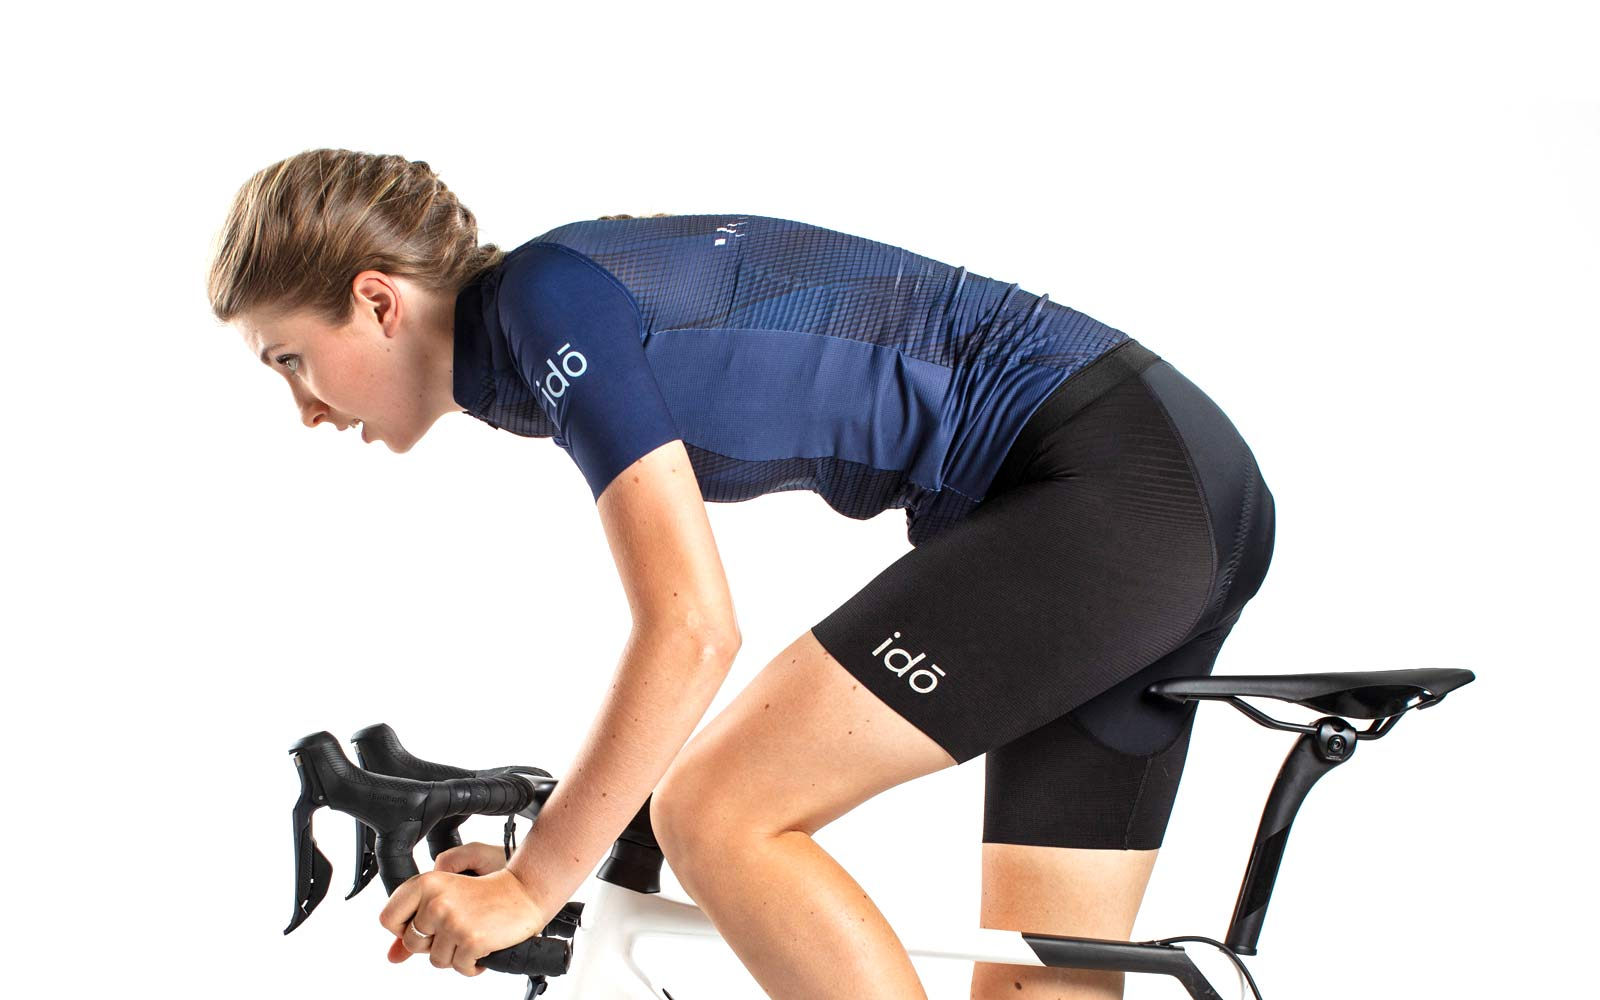 ido indoor cycling clothing, idō lightweight breathable indoor training virtual racing kit for men & women